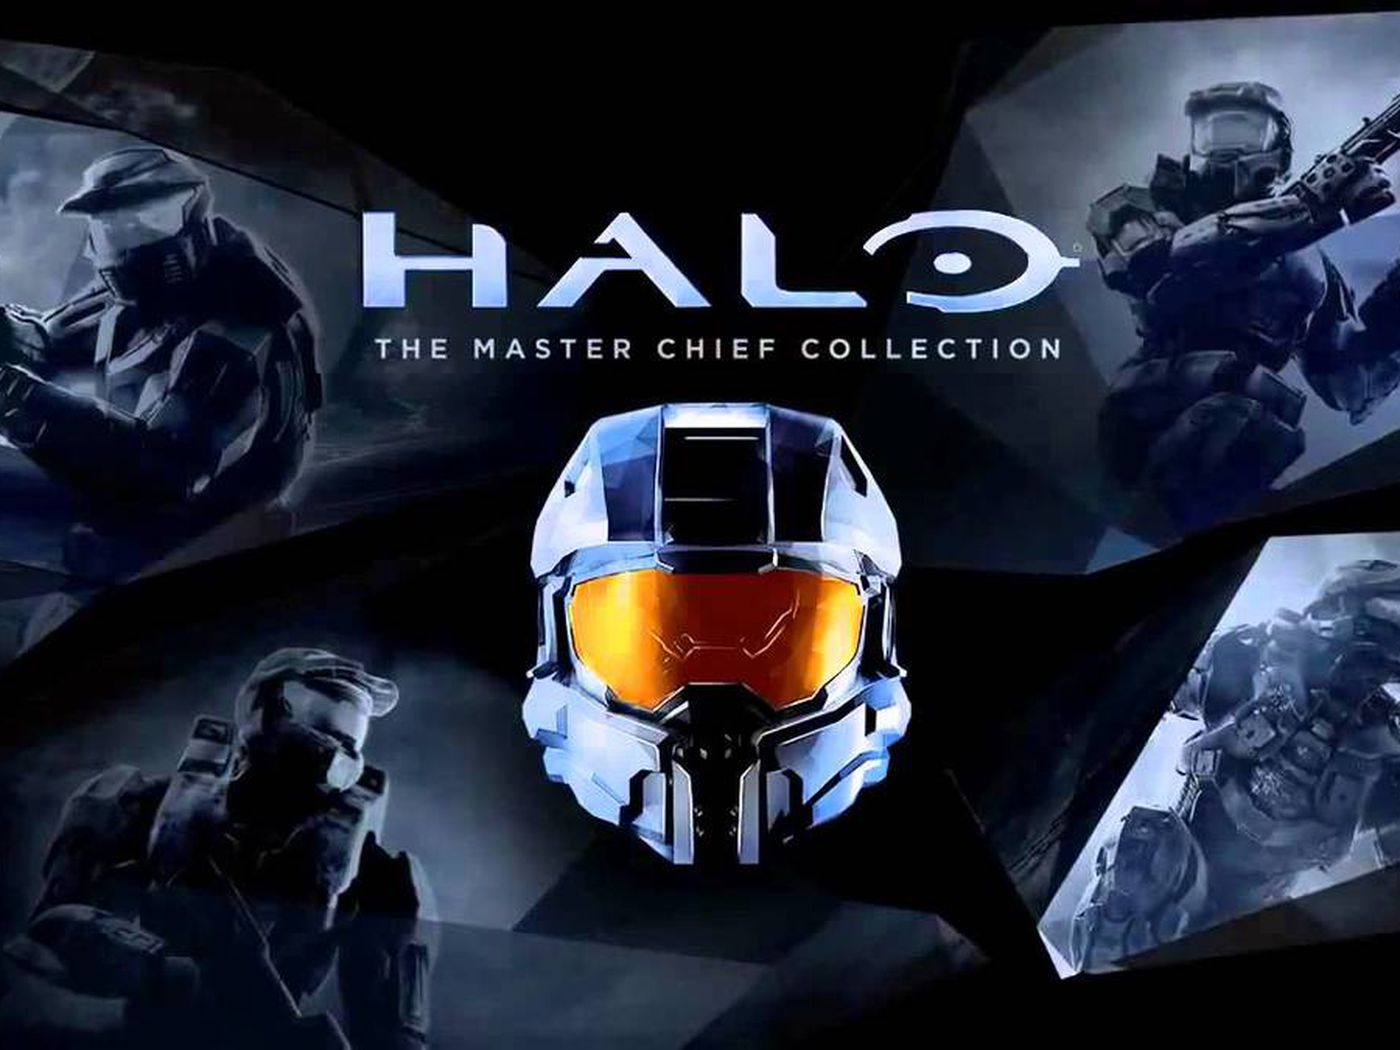 Halo: The Master Chief Collection is coming to PC with Halo